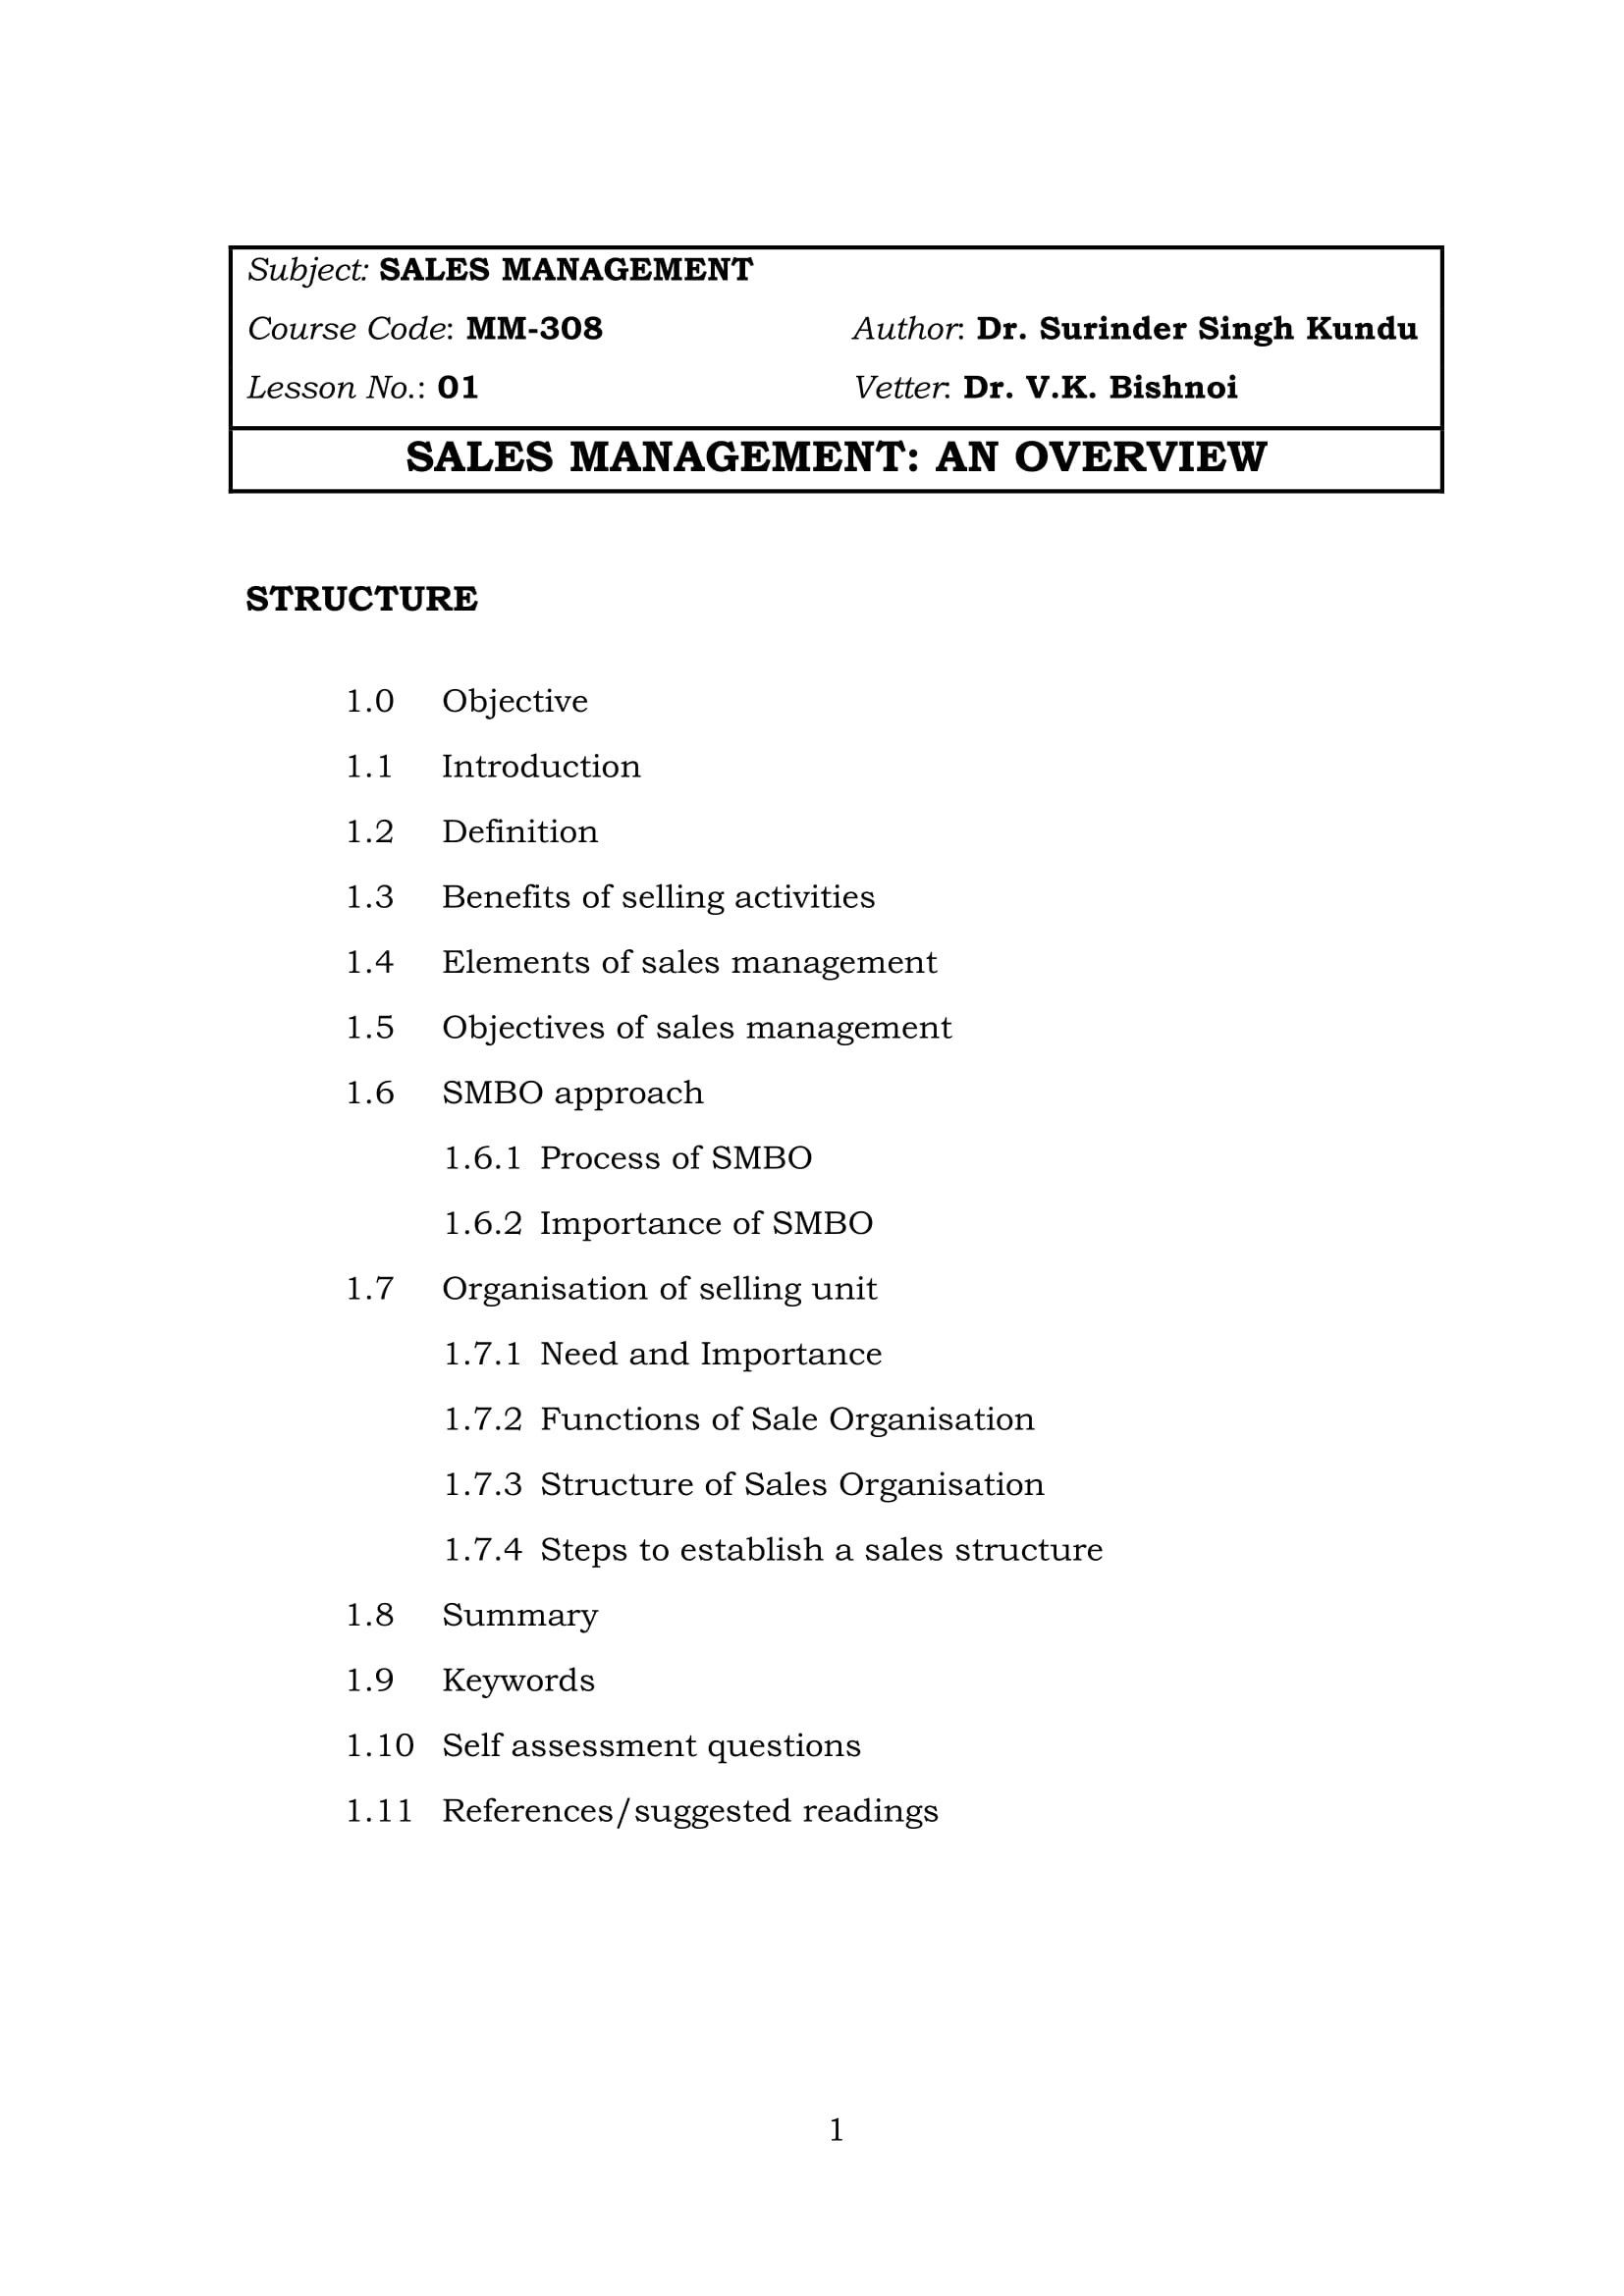 sales management plan for the personal usage of sales manager example 001